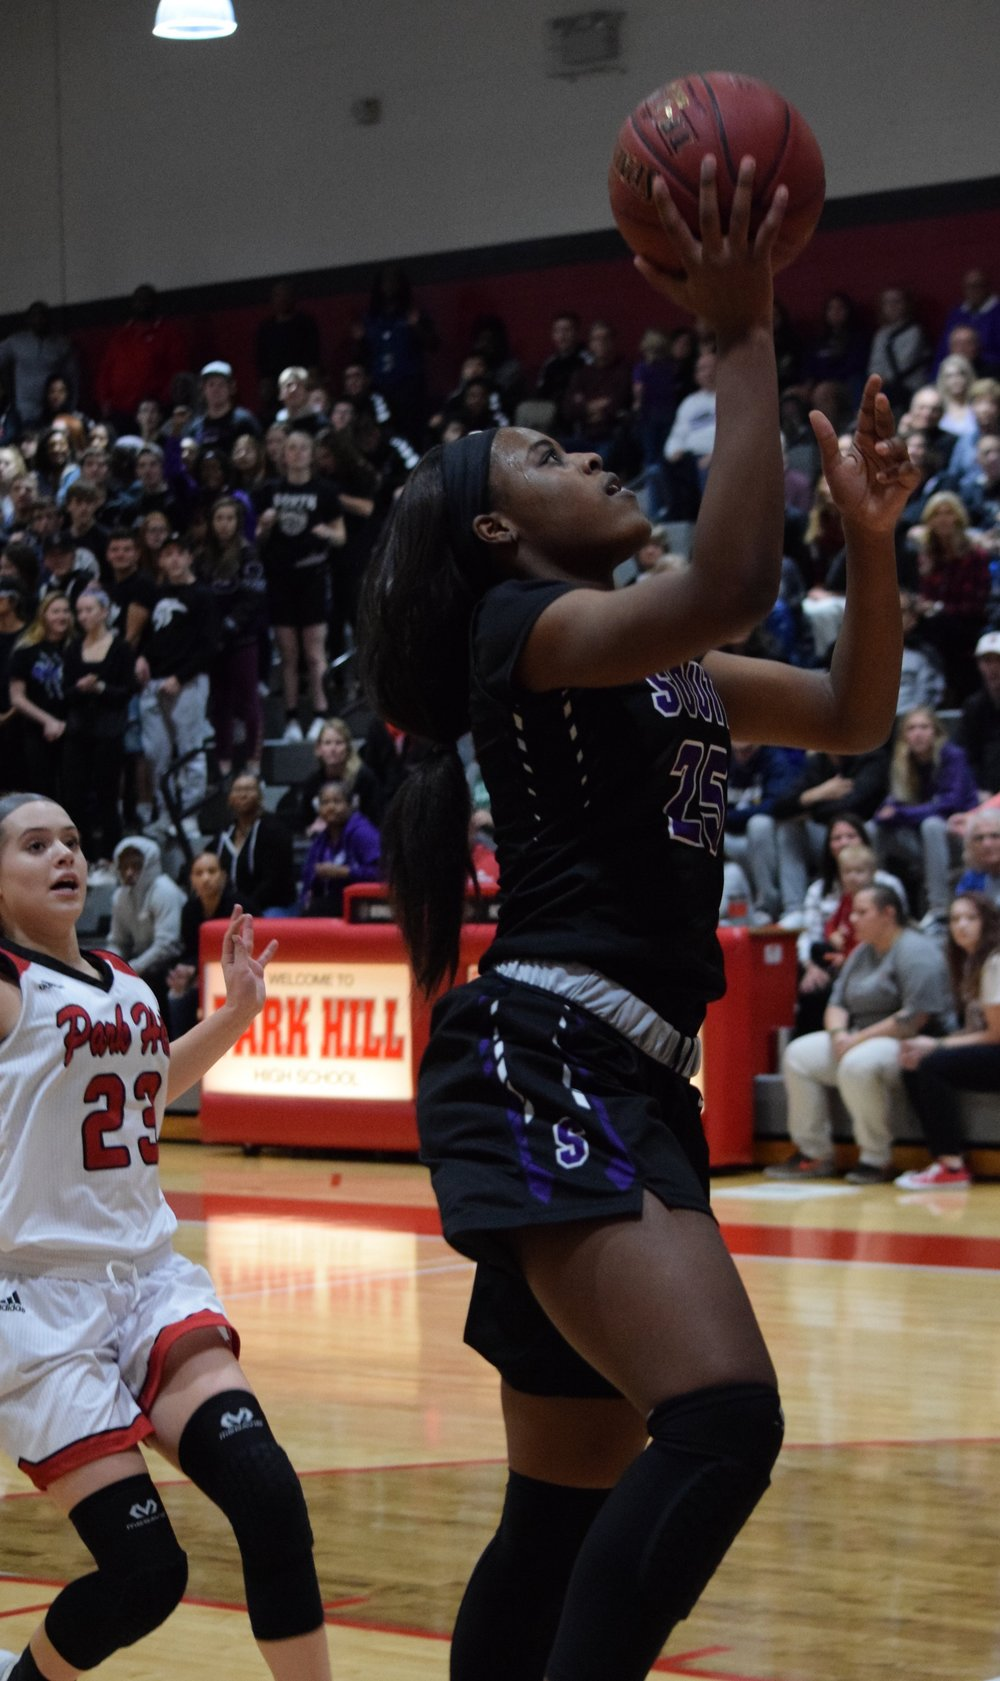 BRYCE MERENESS/Special to The Citizen  Park Hill South junior forward Alecia Westbrook goes in for a layup against Park Hill on Wednesday, Dec. 20 at Park Hill High School in Kansas City, Mo.